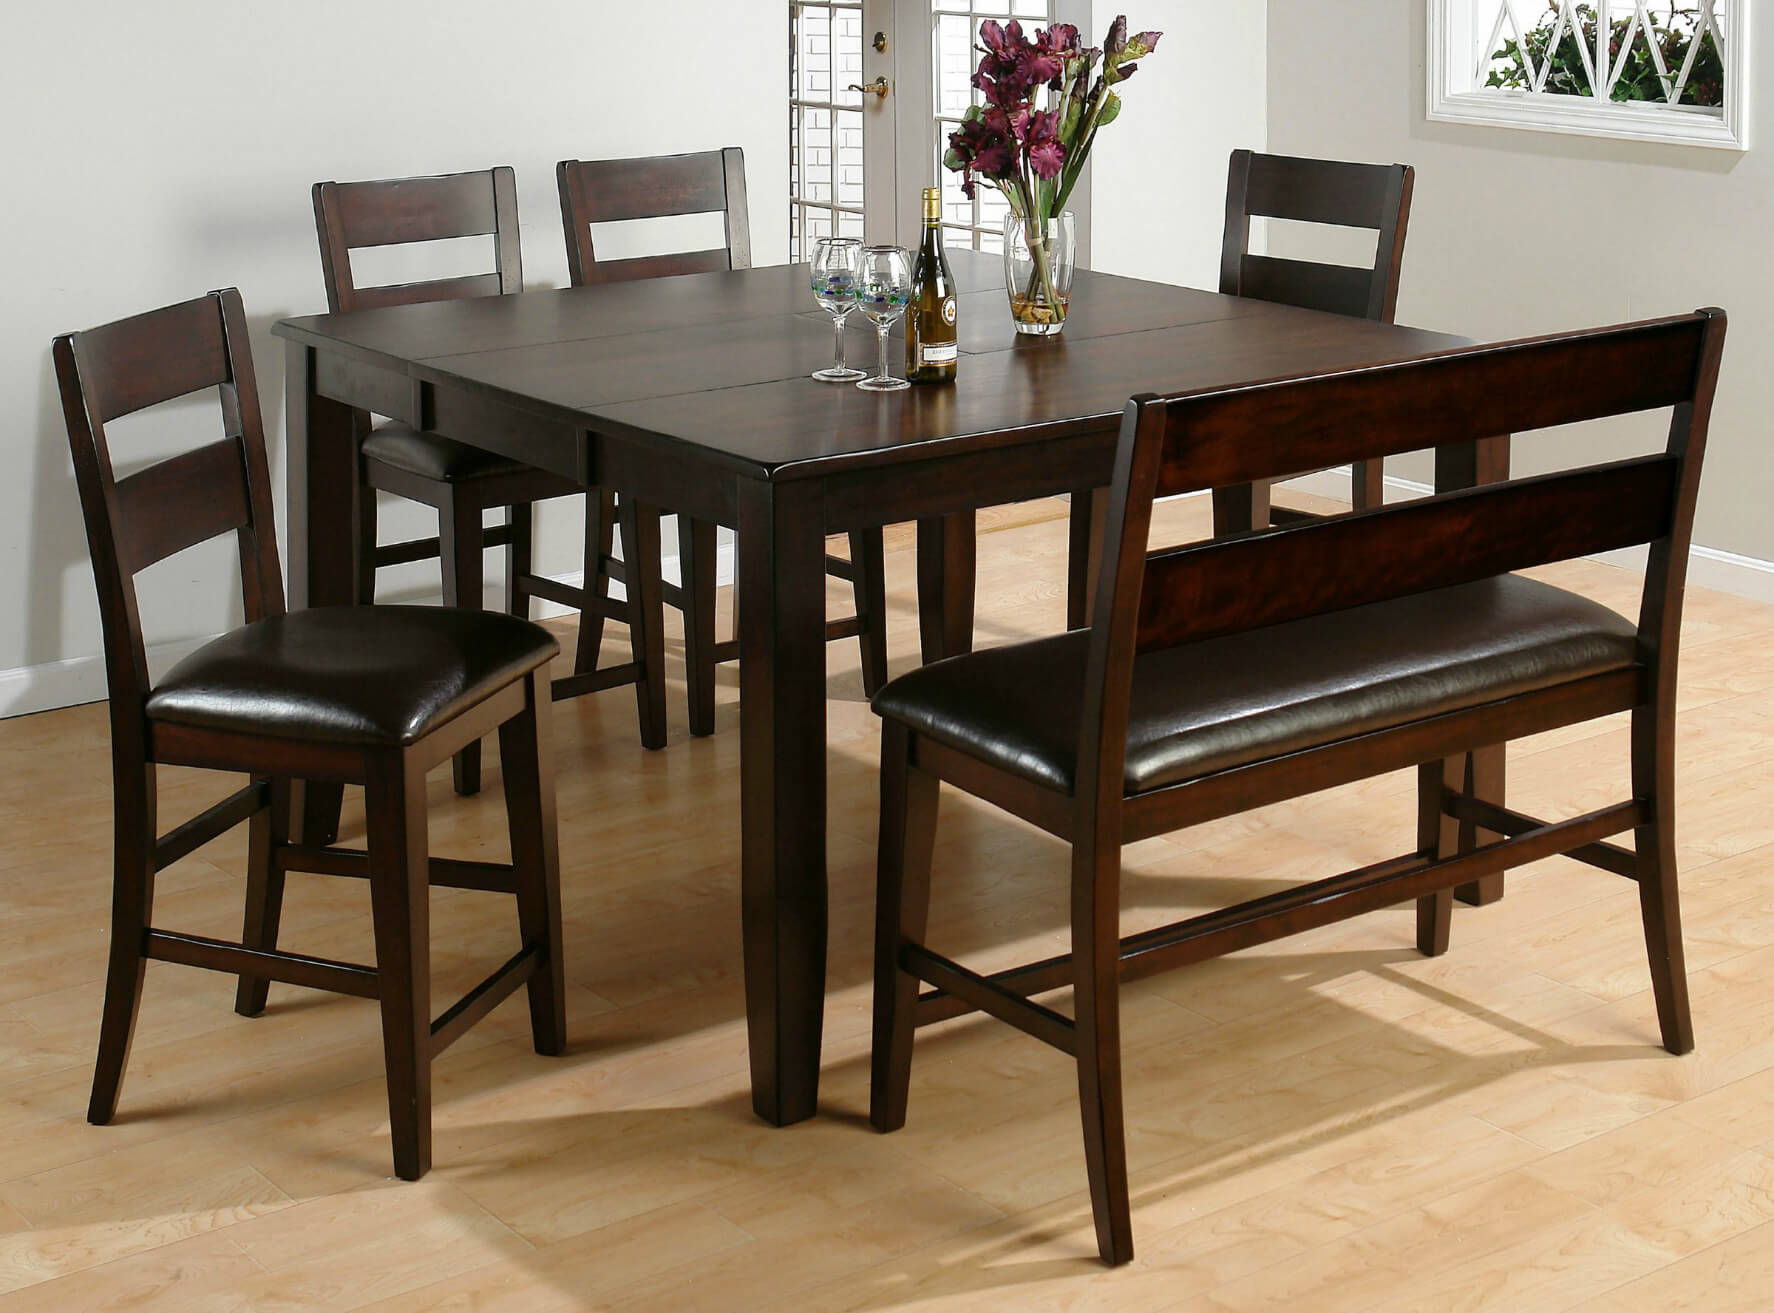 Bsdrt43 Bench Seat Dining Room Table Today 2020 11 29 Download Here